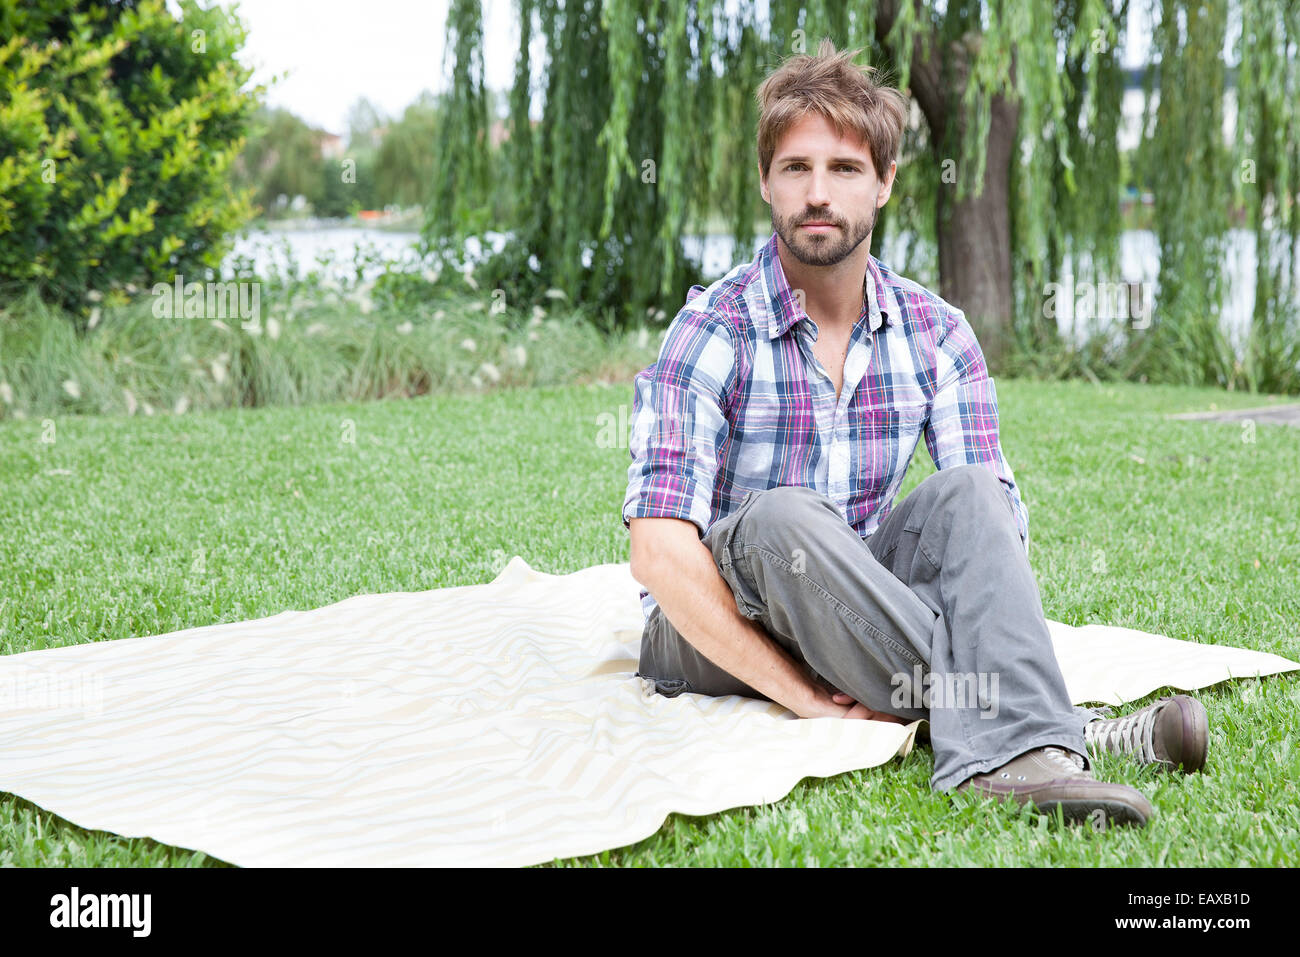 Man sitting on blanket outdoors - Stock Image